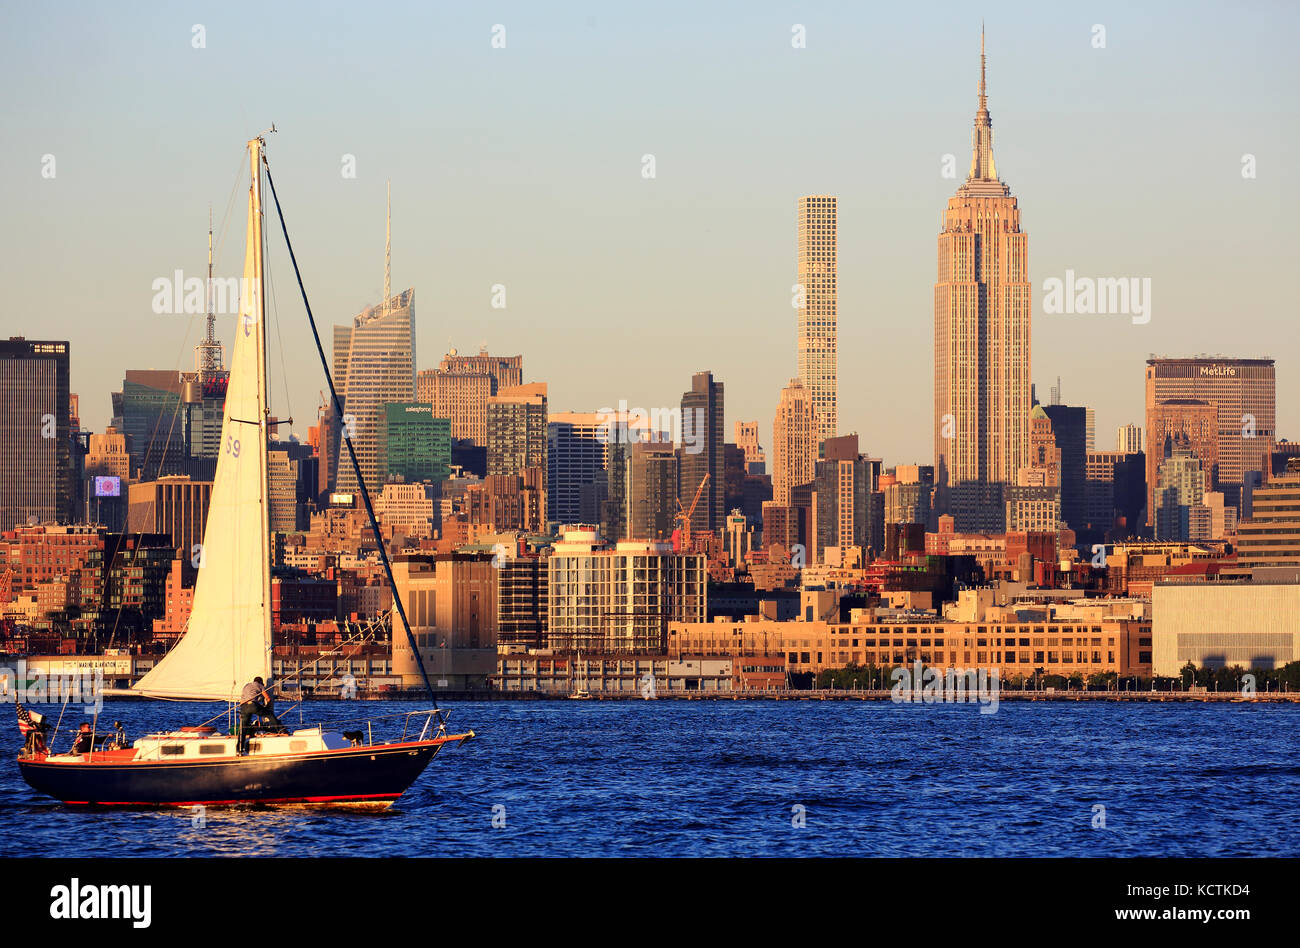 A sailboat in Hudson River with skyline of midtown Manhattan and Empire State Building in background.New York City.USA Stock Photo